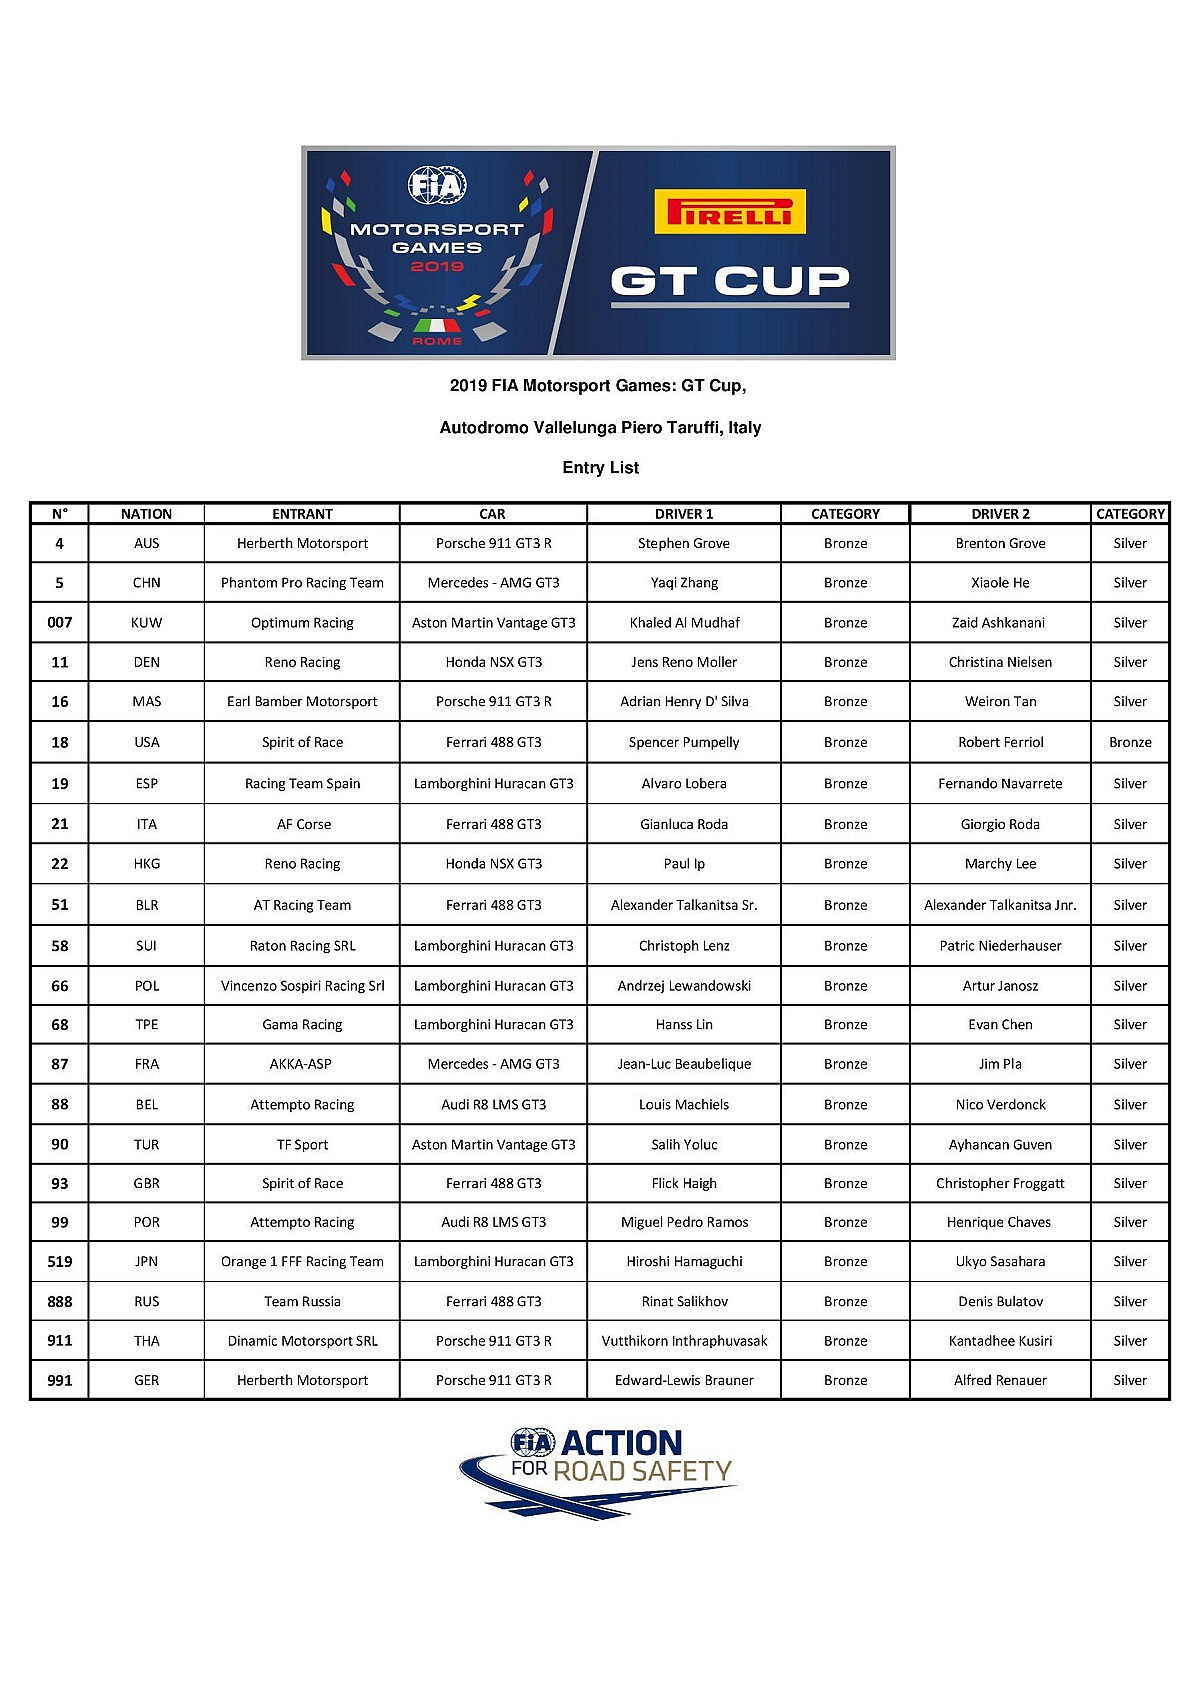 2019_FIA_MSG_GT_Cup_Official_Entry_list_FINAL-page-001.jpg